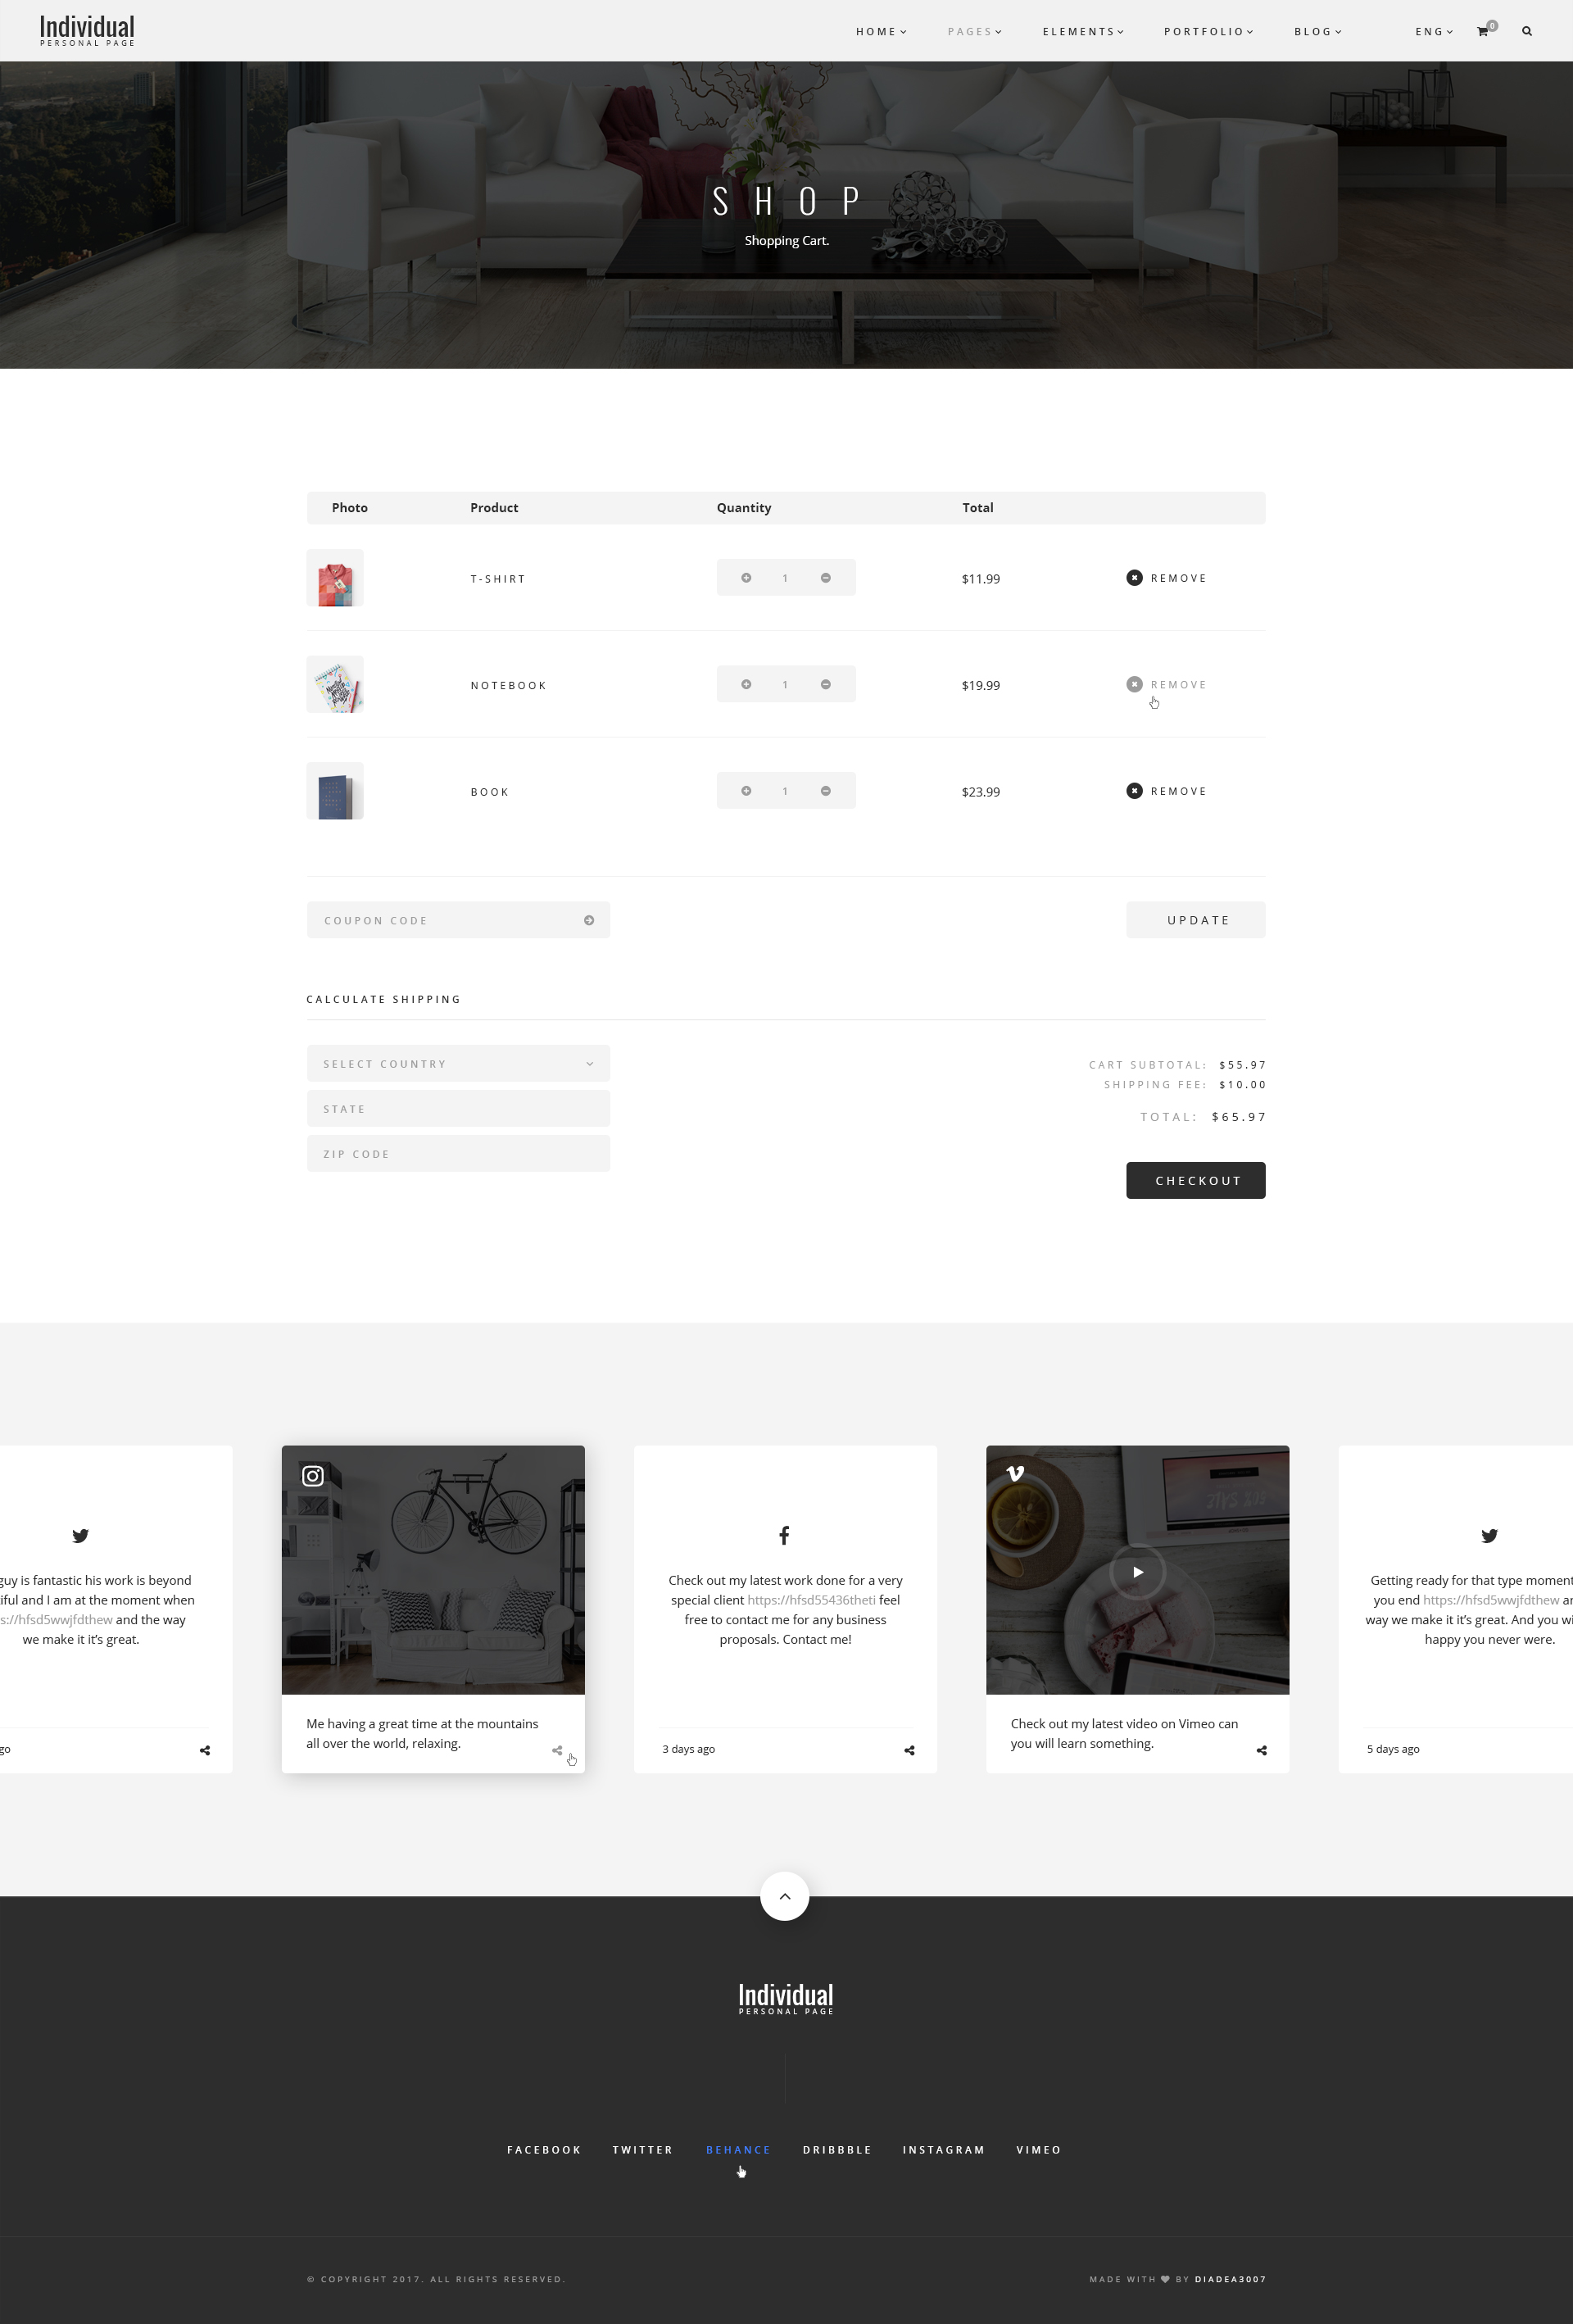 individual personal page psd template by diadea3007 themeforest 30 404 page jpg 31 blog sidebar jpg 32 blog single post jpg 33 blog fullwidth jpg 34 shop grid jpg 35 shop list jpg 36 shop single post jpg